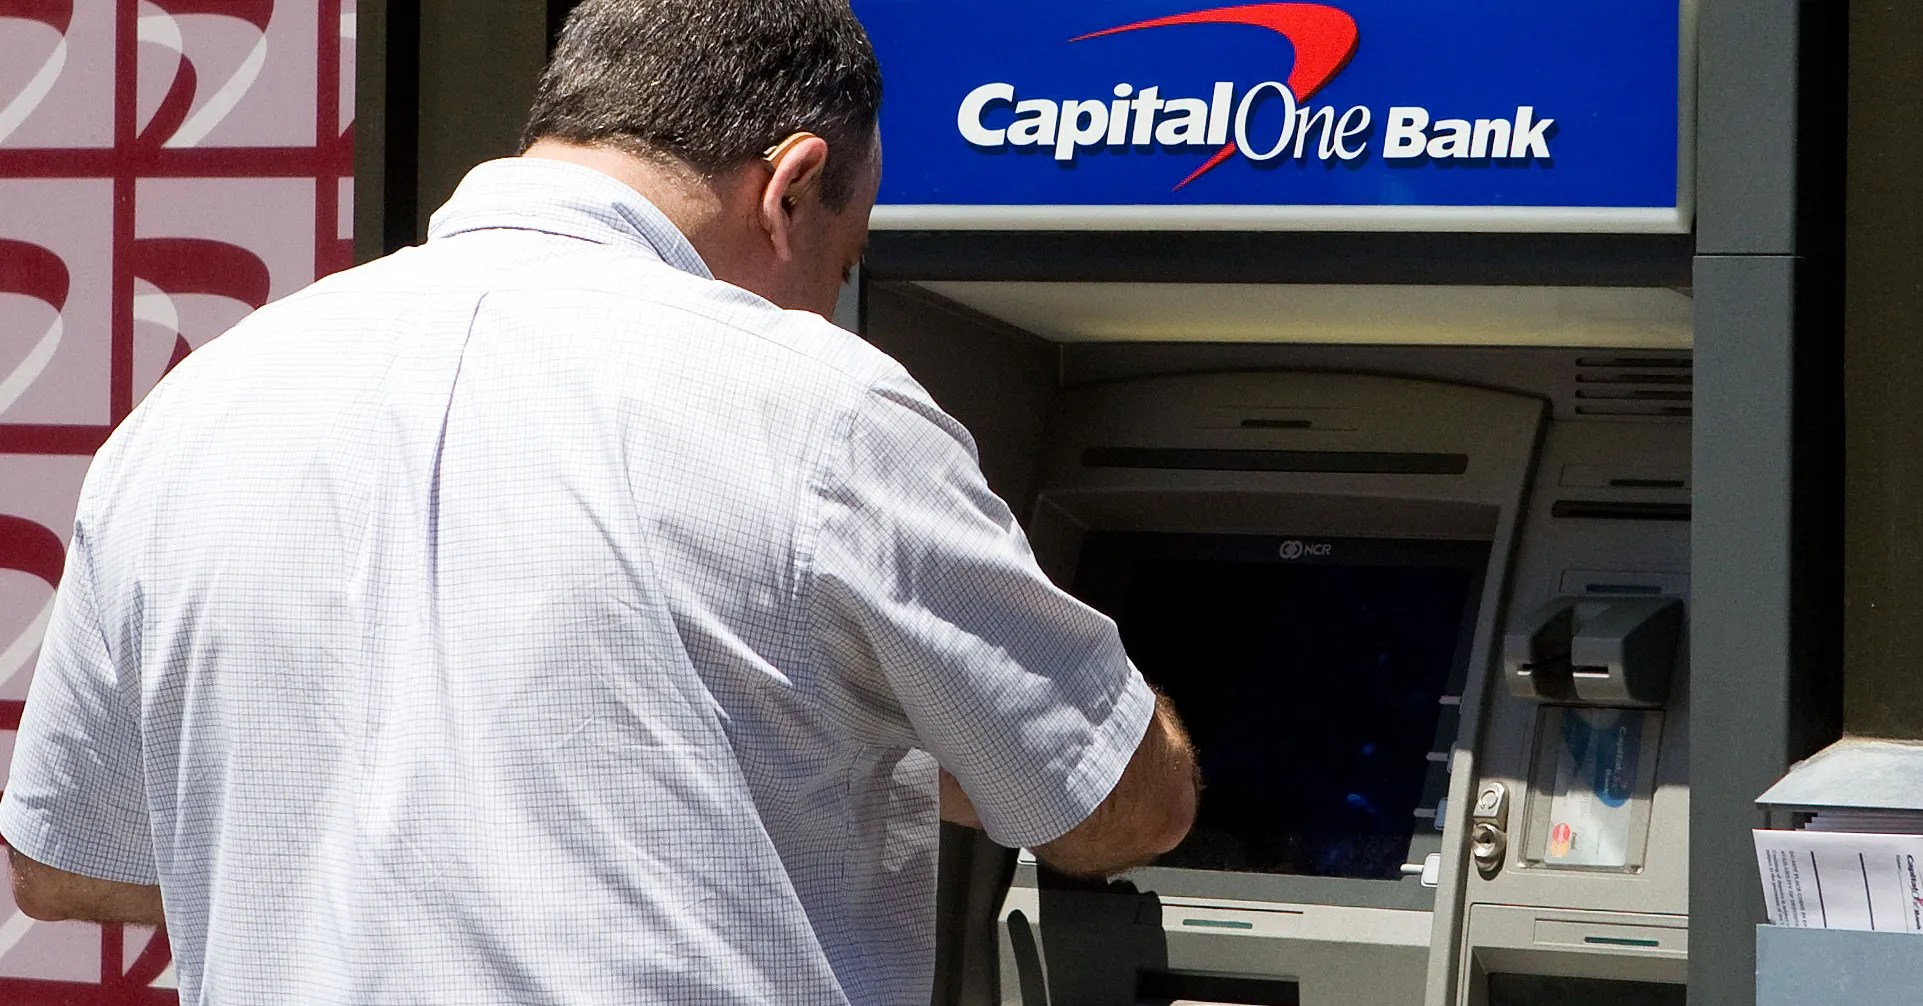 The Alleged Capital One Hacker Didn't Cover Her Tracks